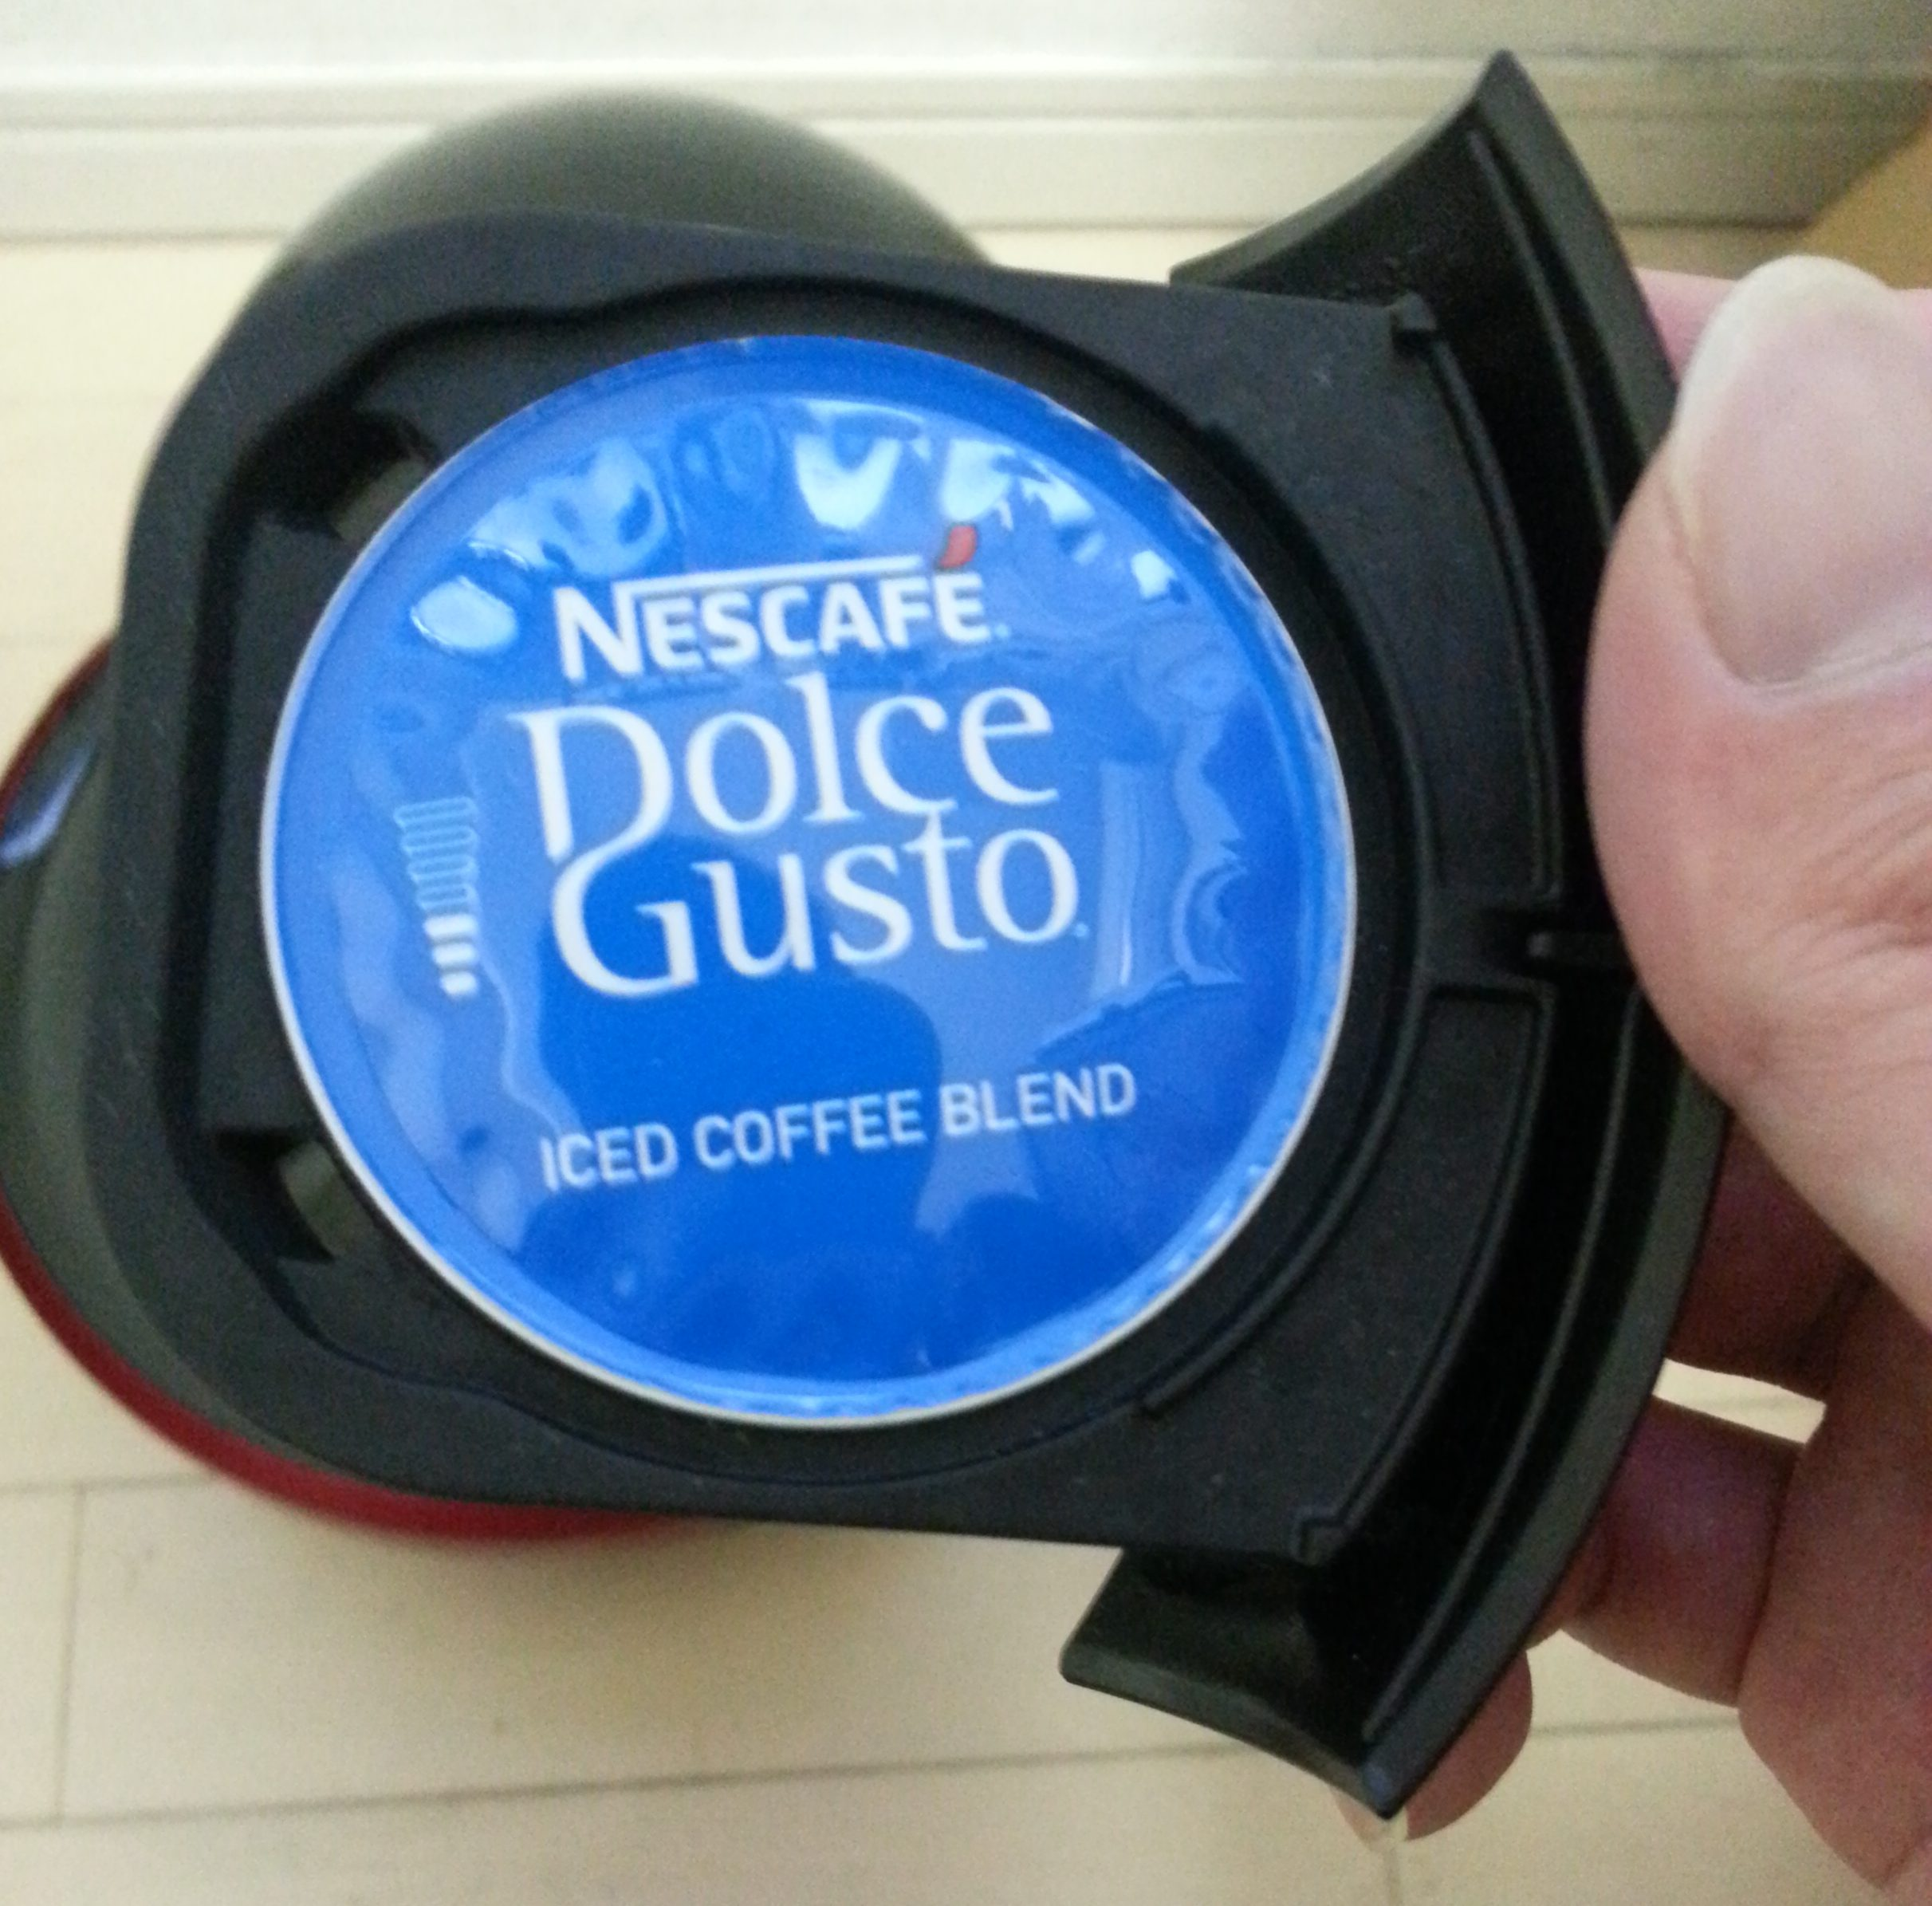 nescafe-dolcegusto-icecoffee2